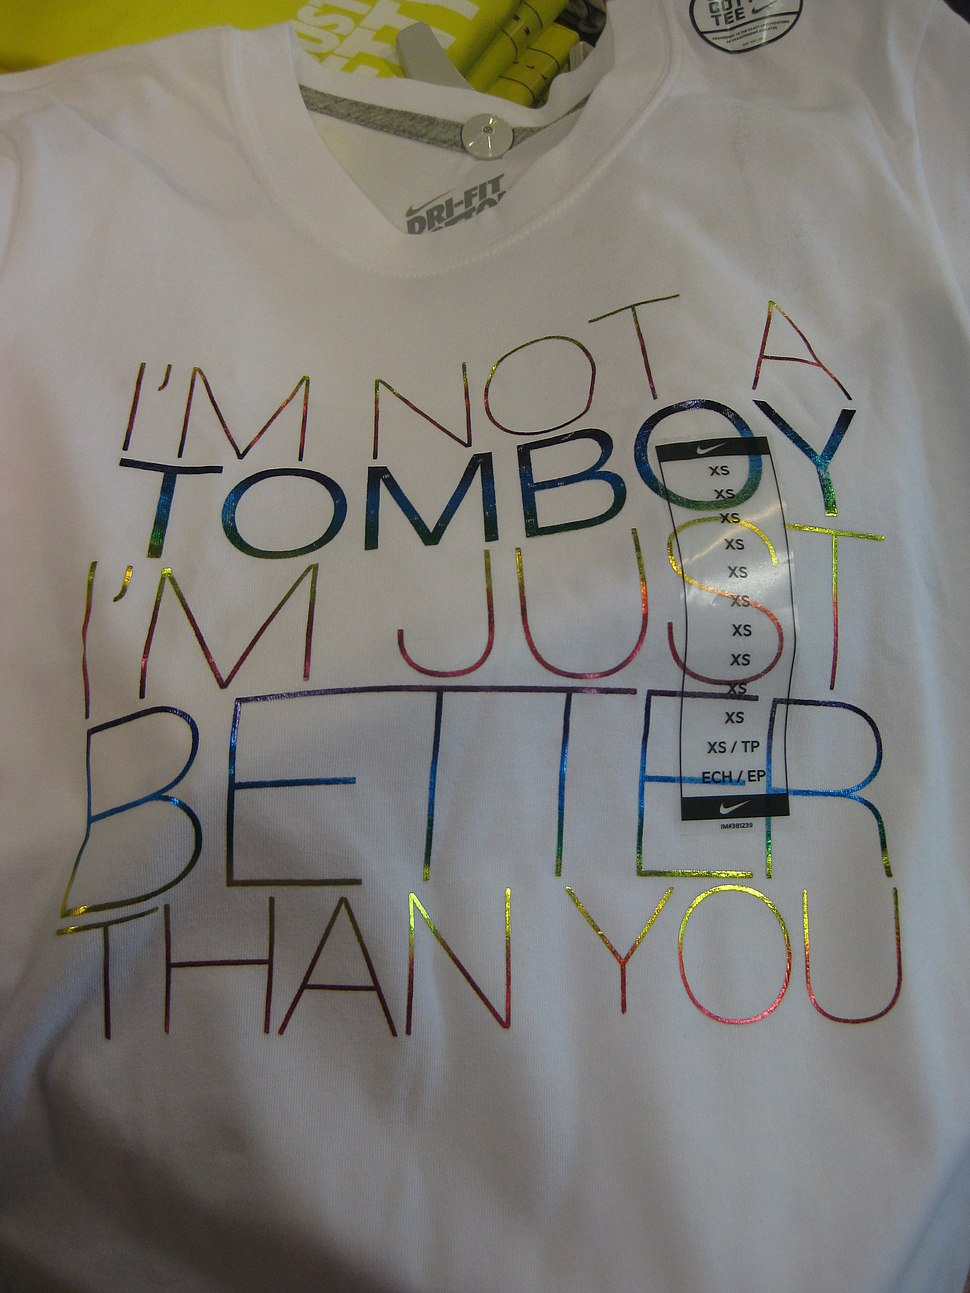 I%27m not a tomboy %E2%80%94 I%27m just better than you.jpg